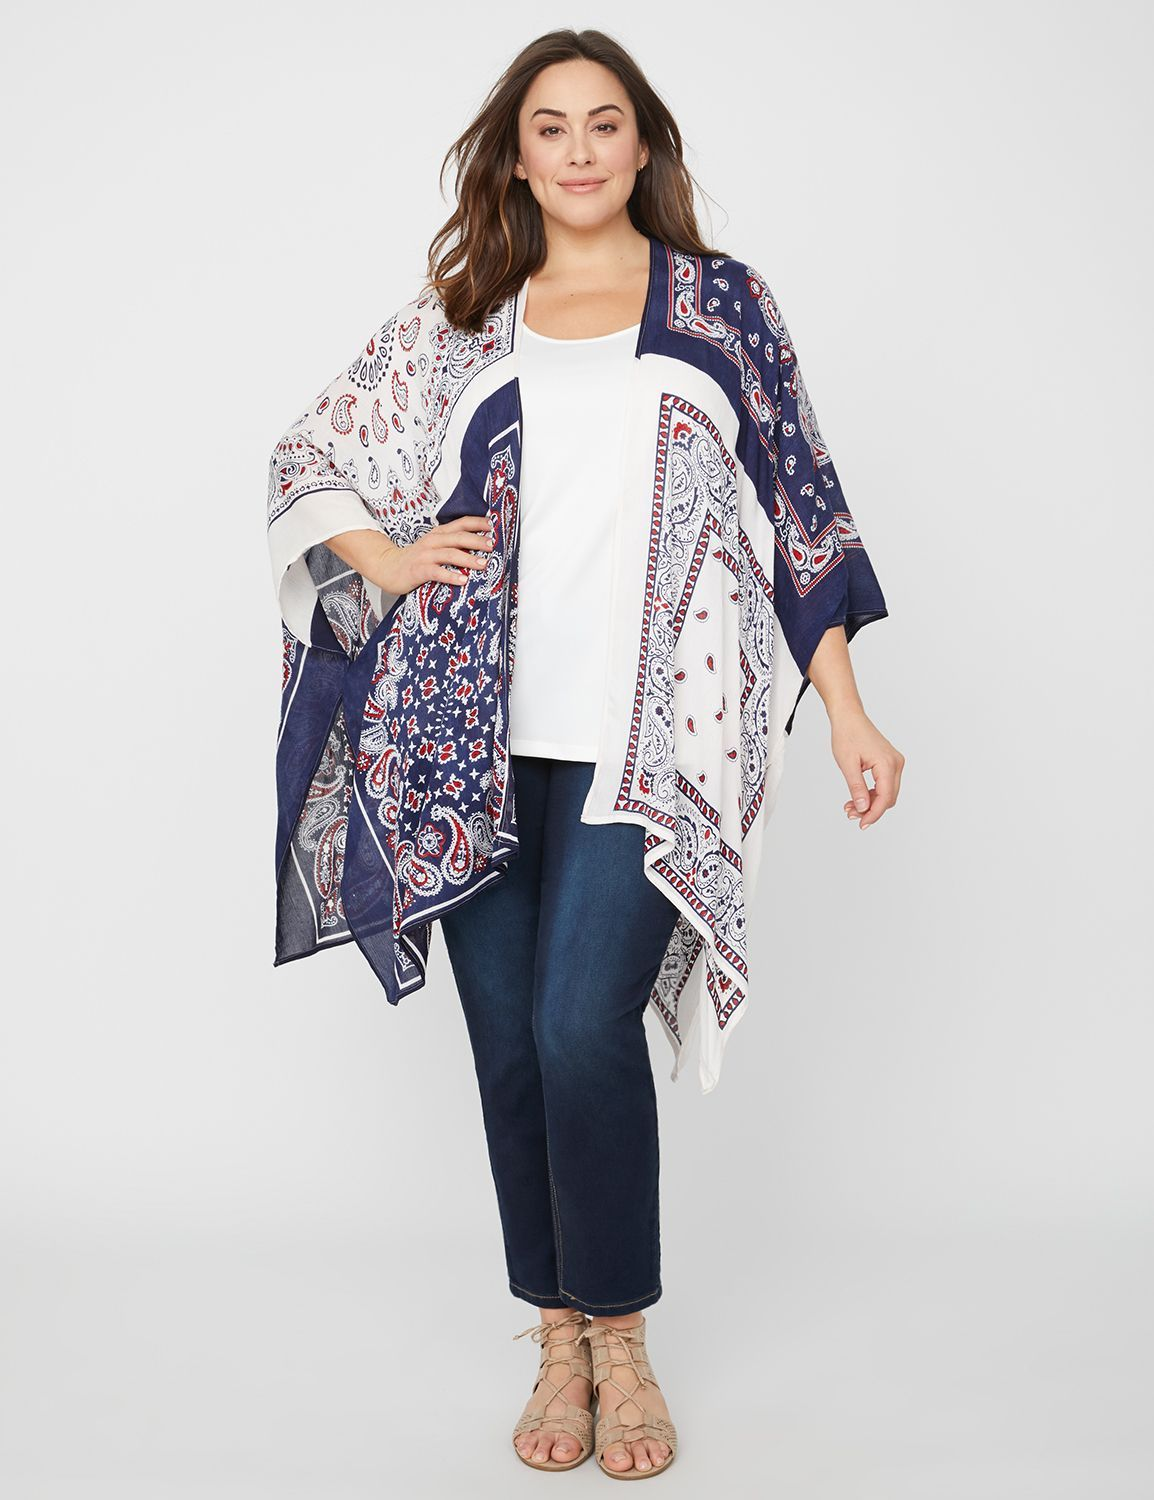 93c0e017d39 Shop for a Bandana Kimono at Catherines.com. Read reviews and browse our  wide selection to match any budget or occasion.